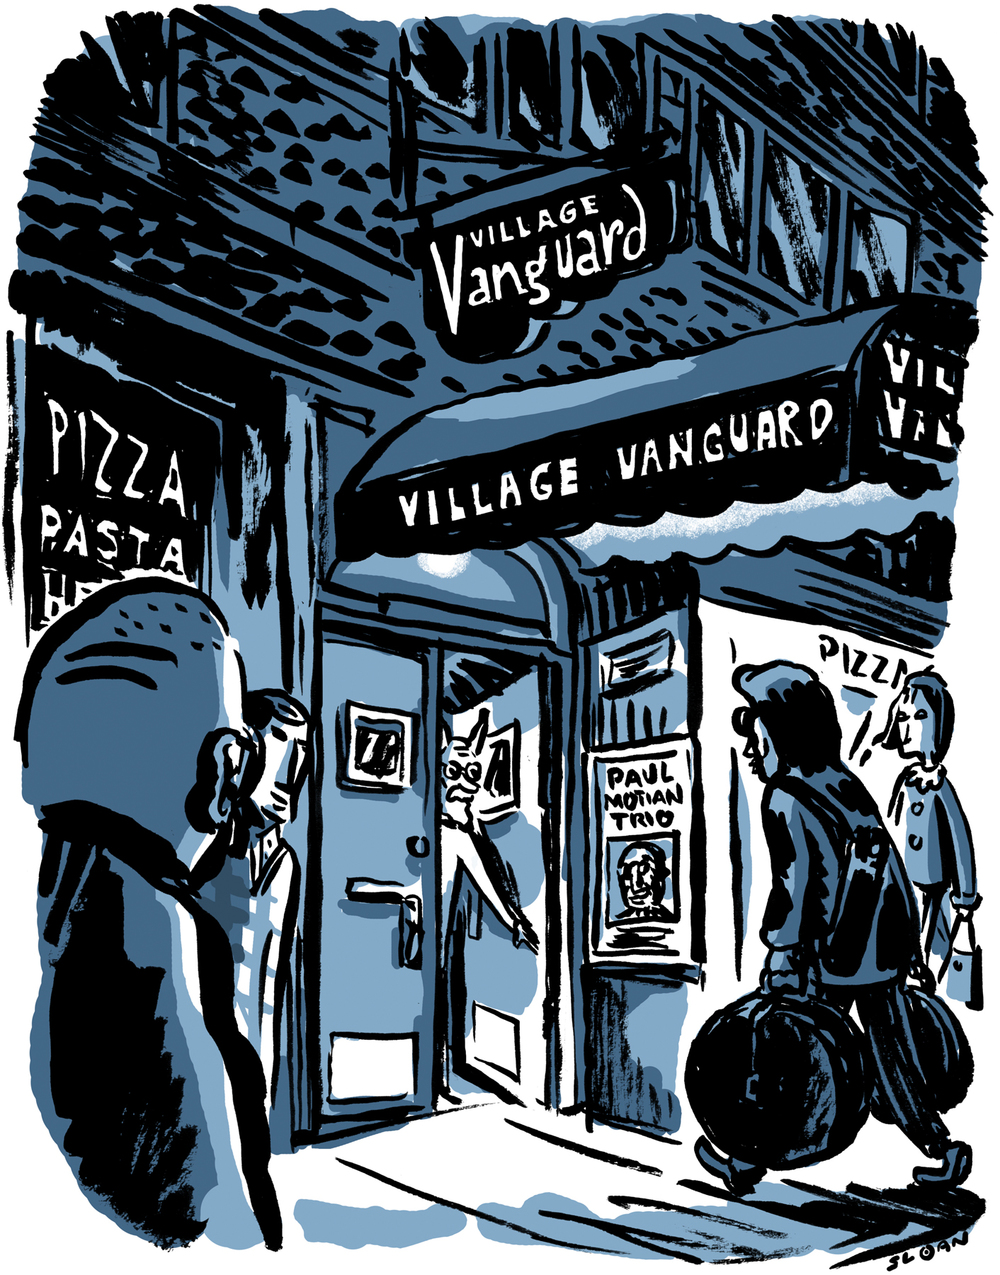 Paul Motian at the Village Vanguard.